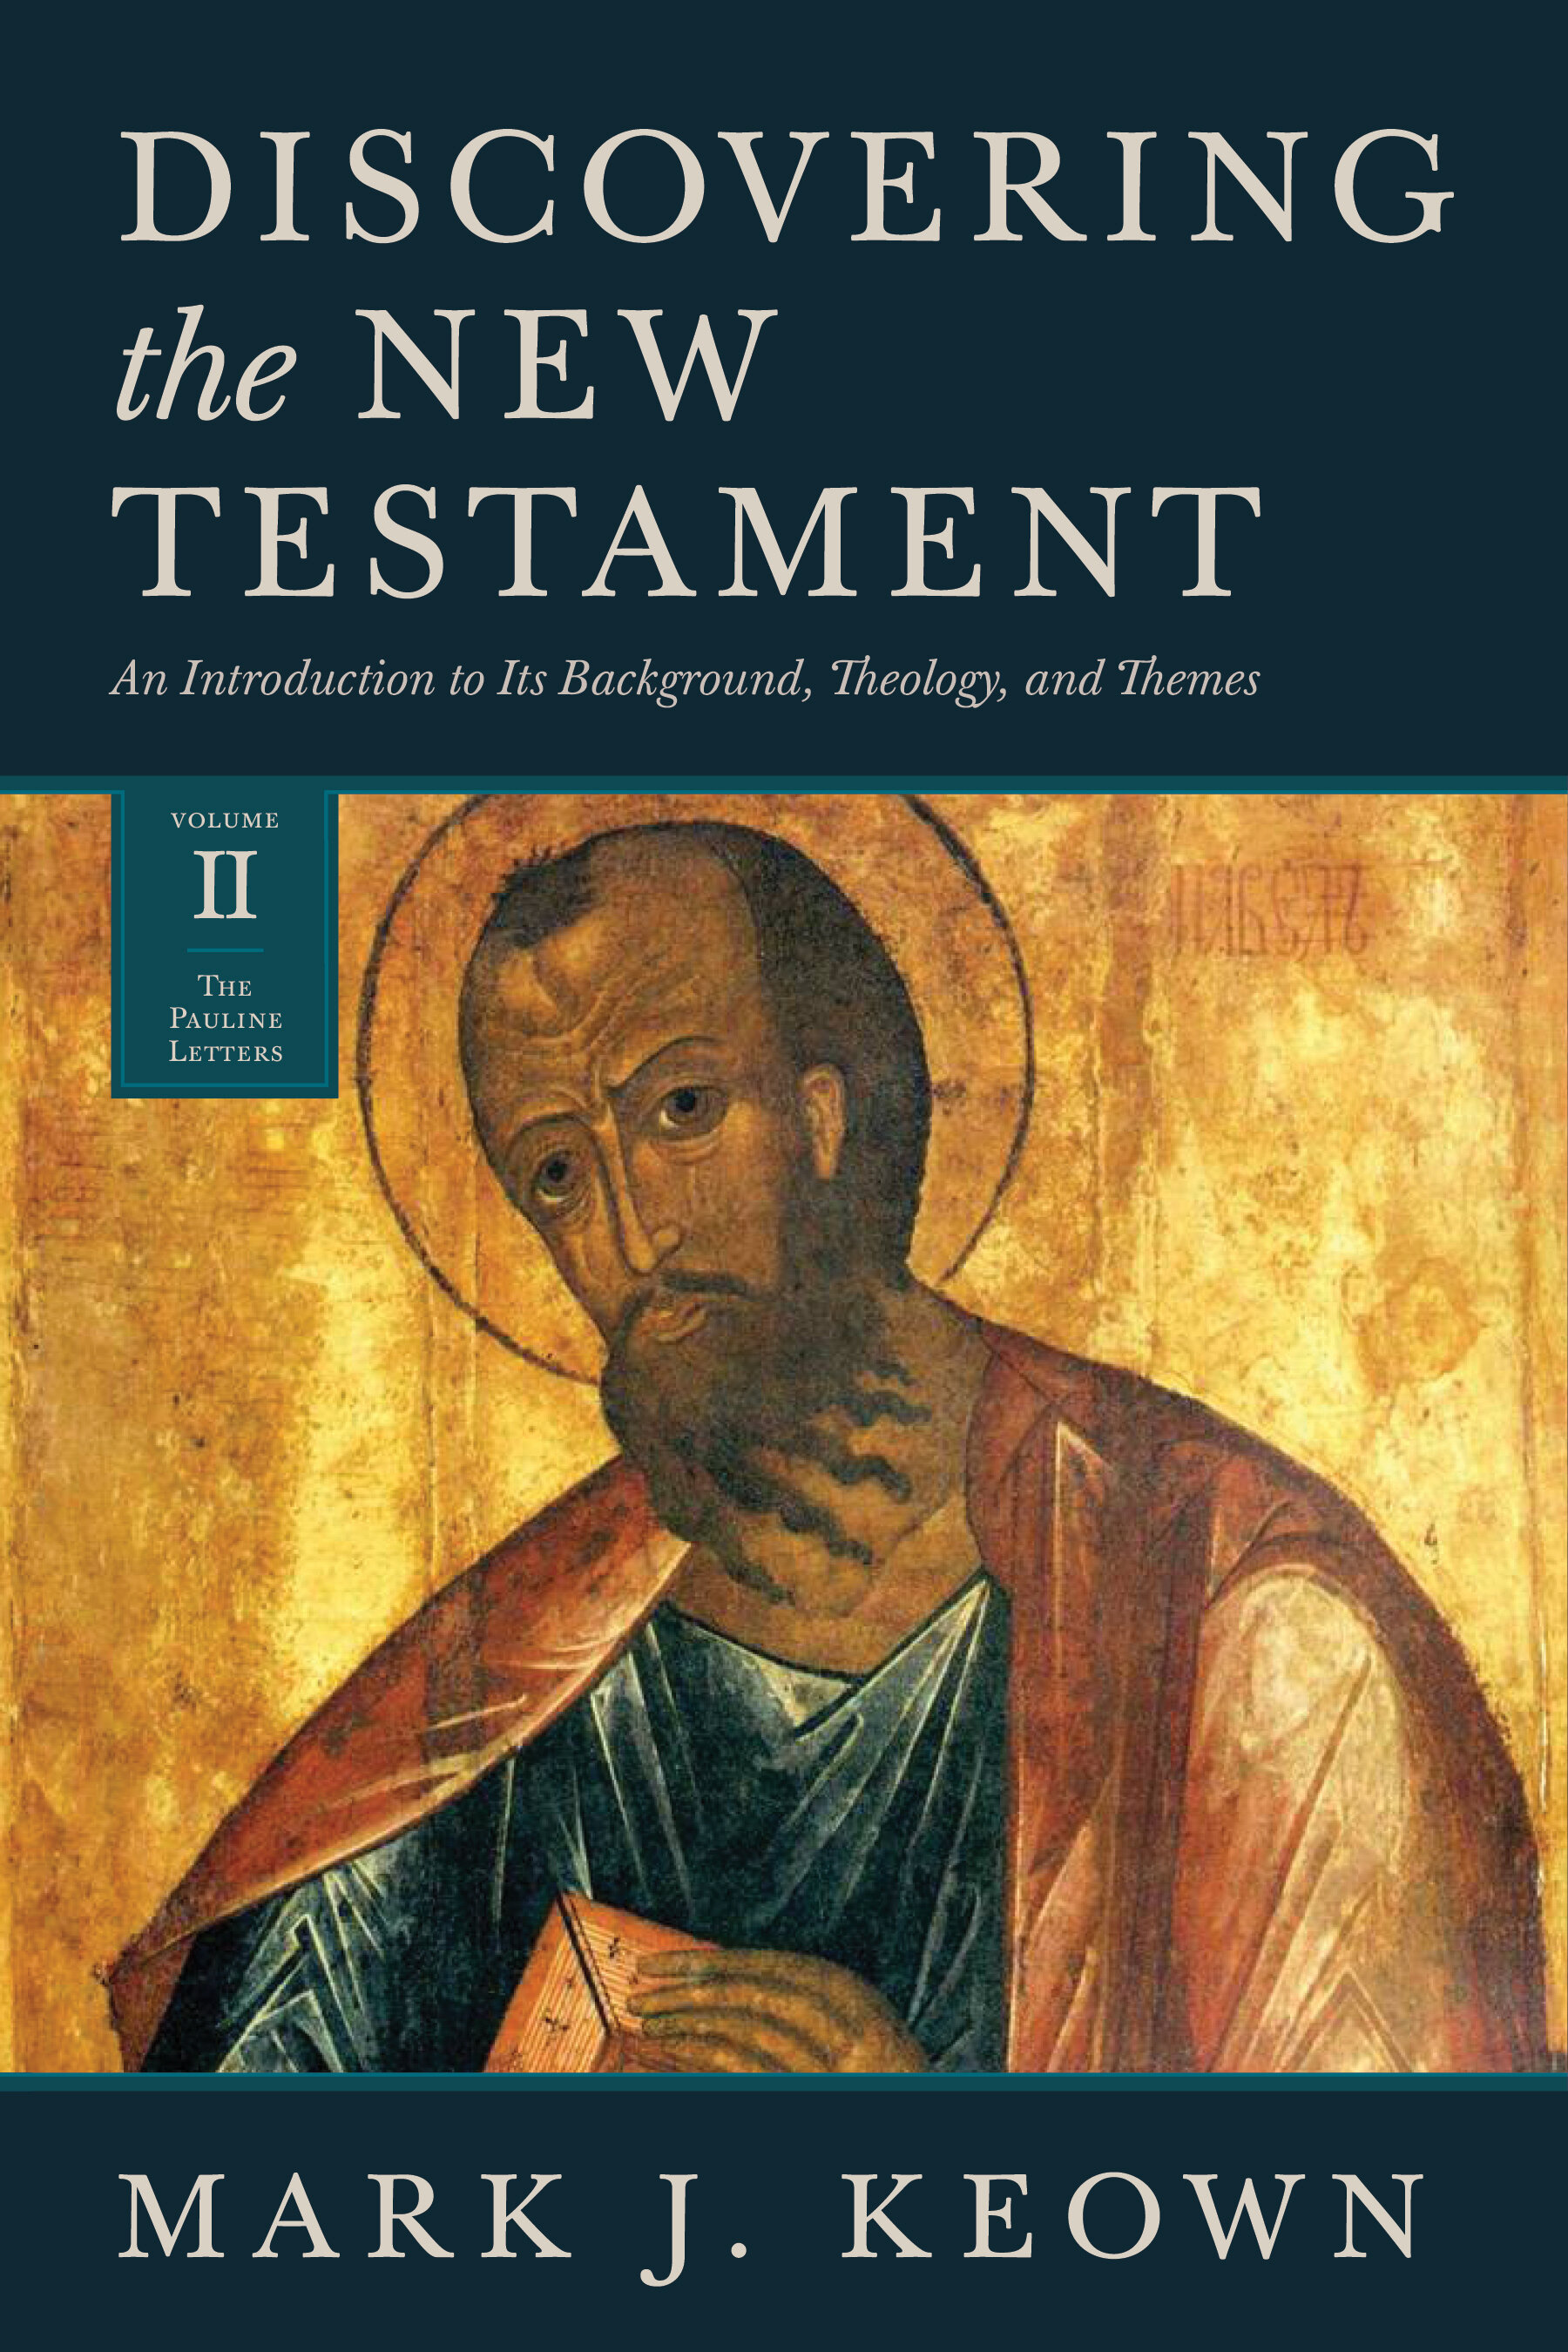 Discovering the New Testament, vol. 2